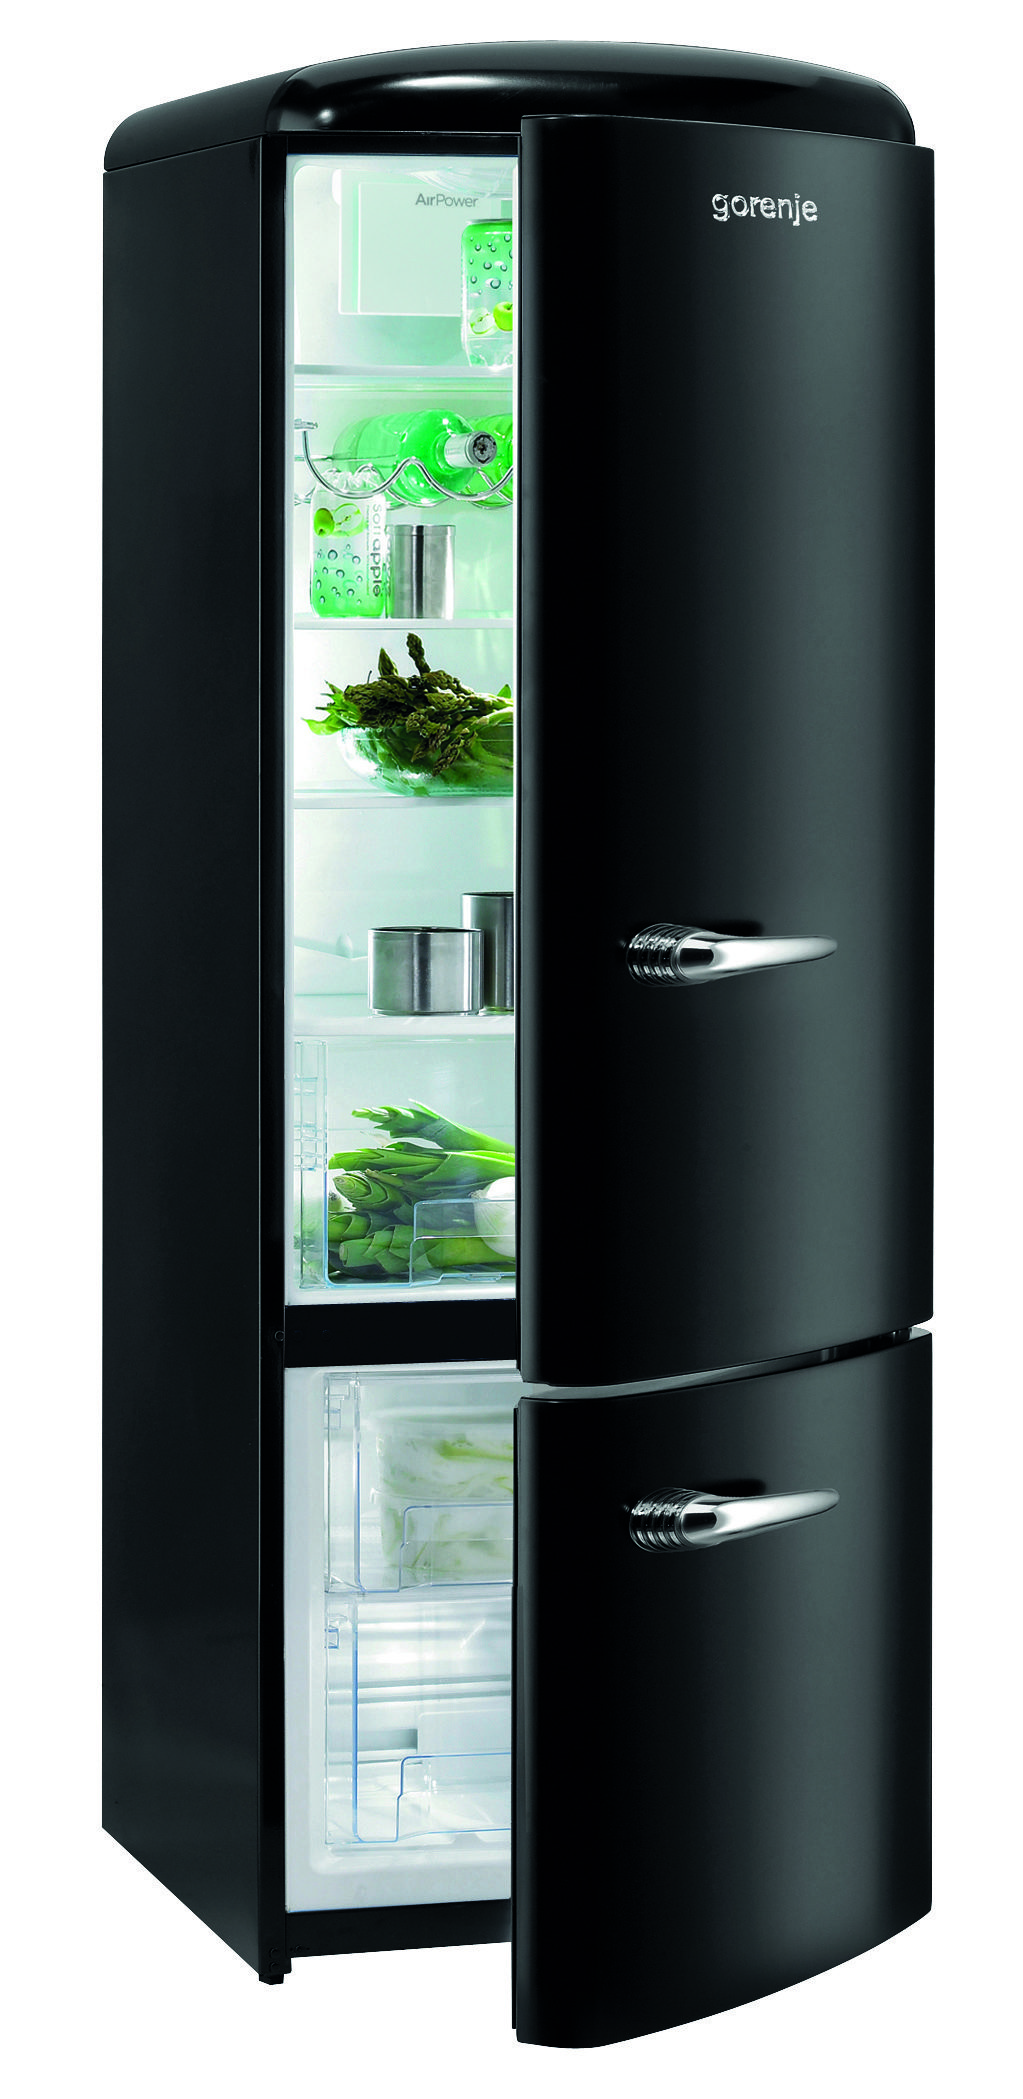 r frig rateur cong lateur gorenje rk60319obk coloris noir cuisines. Black Bedroom Furniture Sets. Home Design Ideas